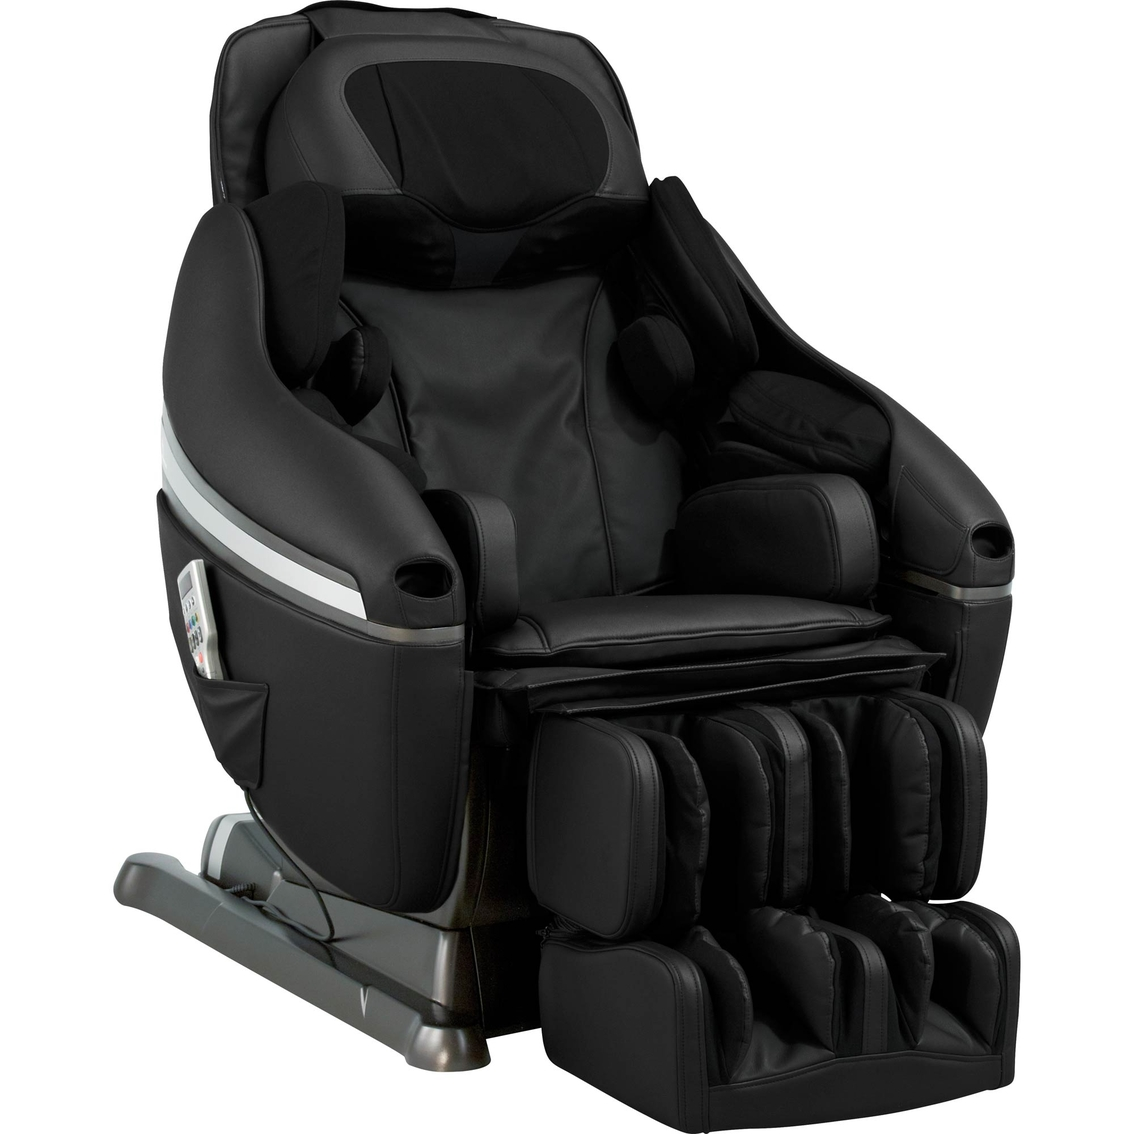 Inada Chair Inada Dreamwave Massage Chair True Black Chairs